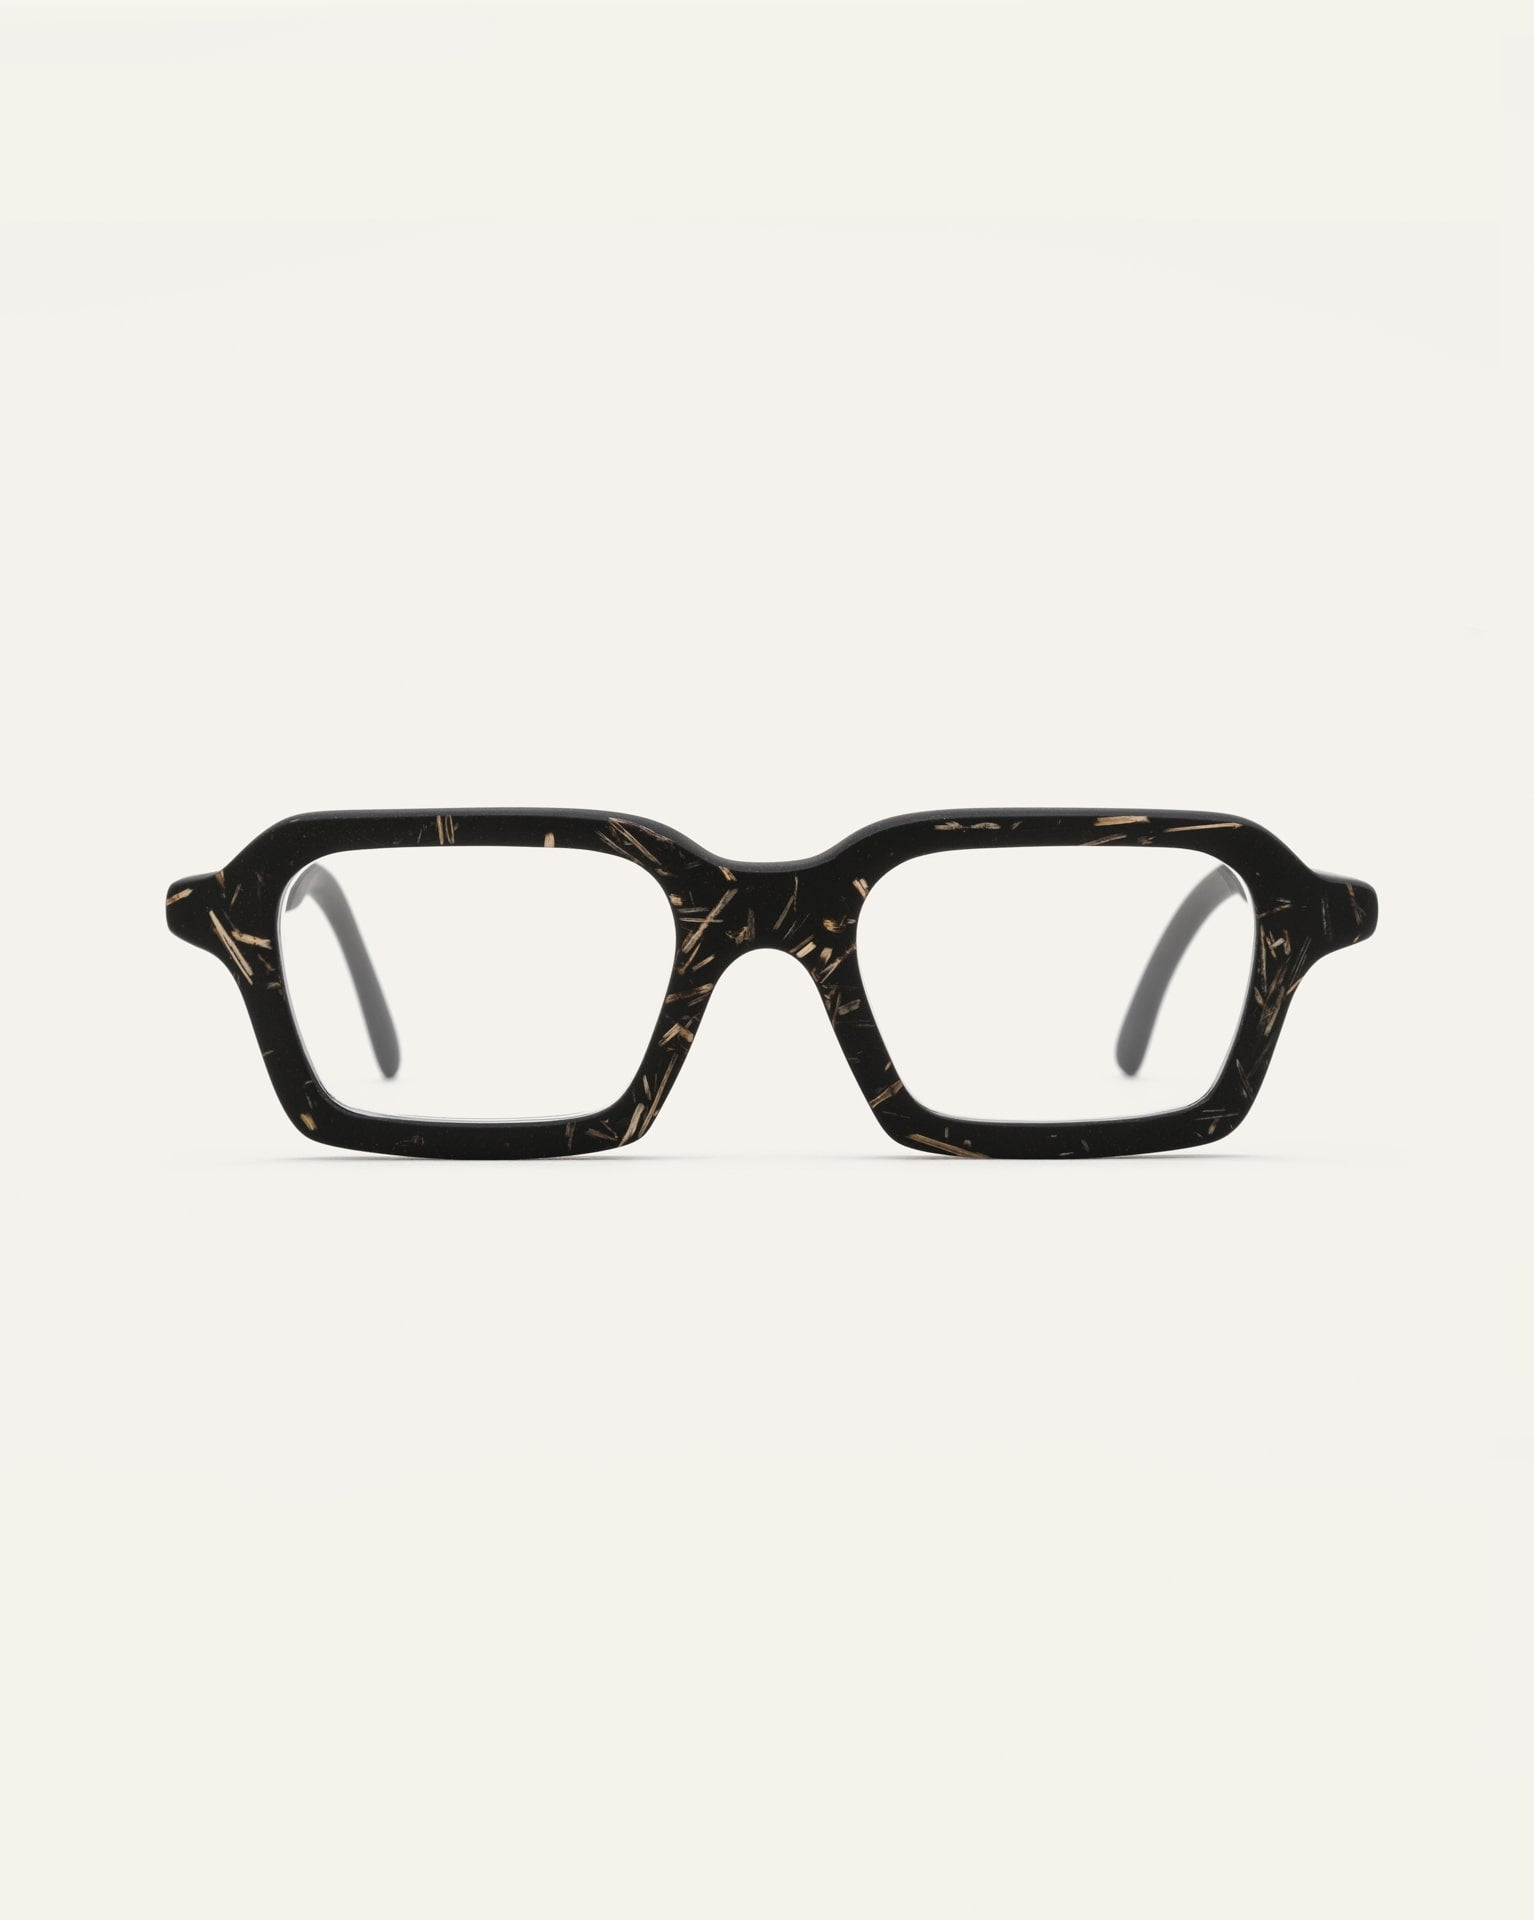 eyewear by individual parameters